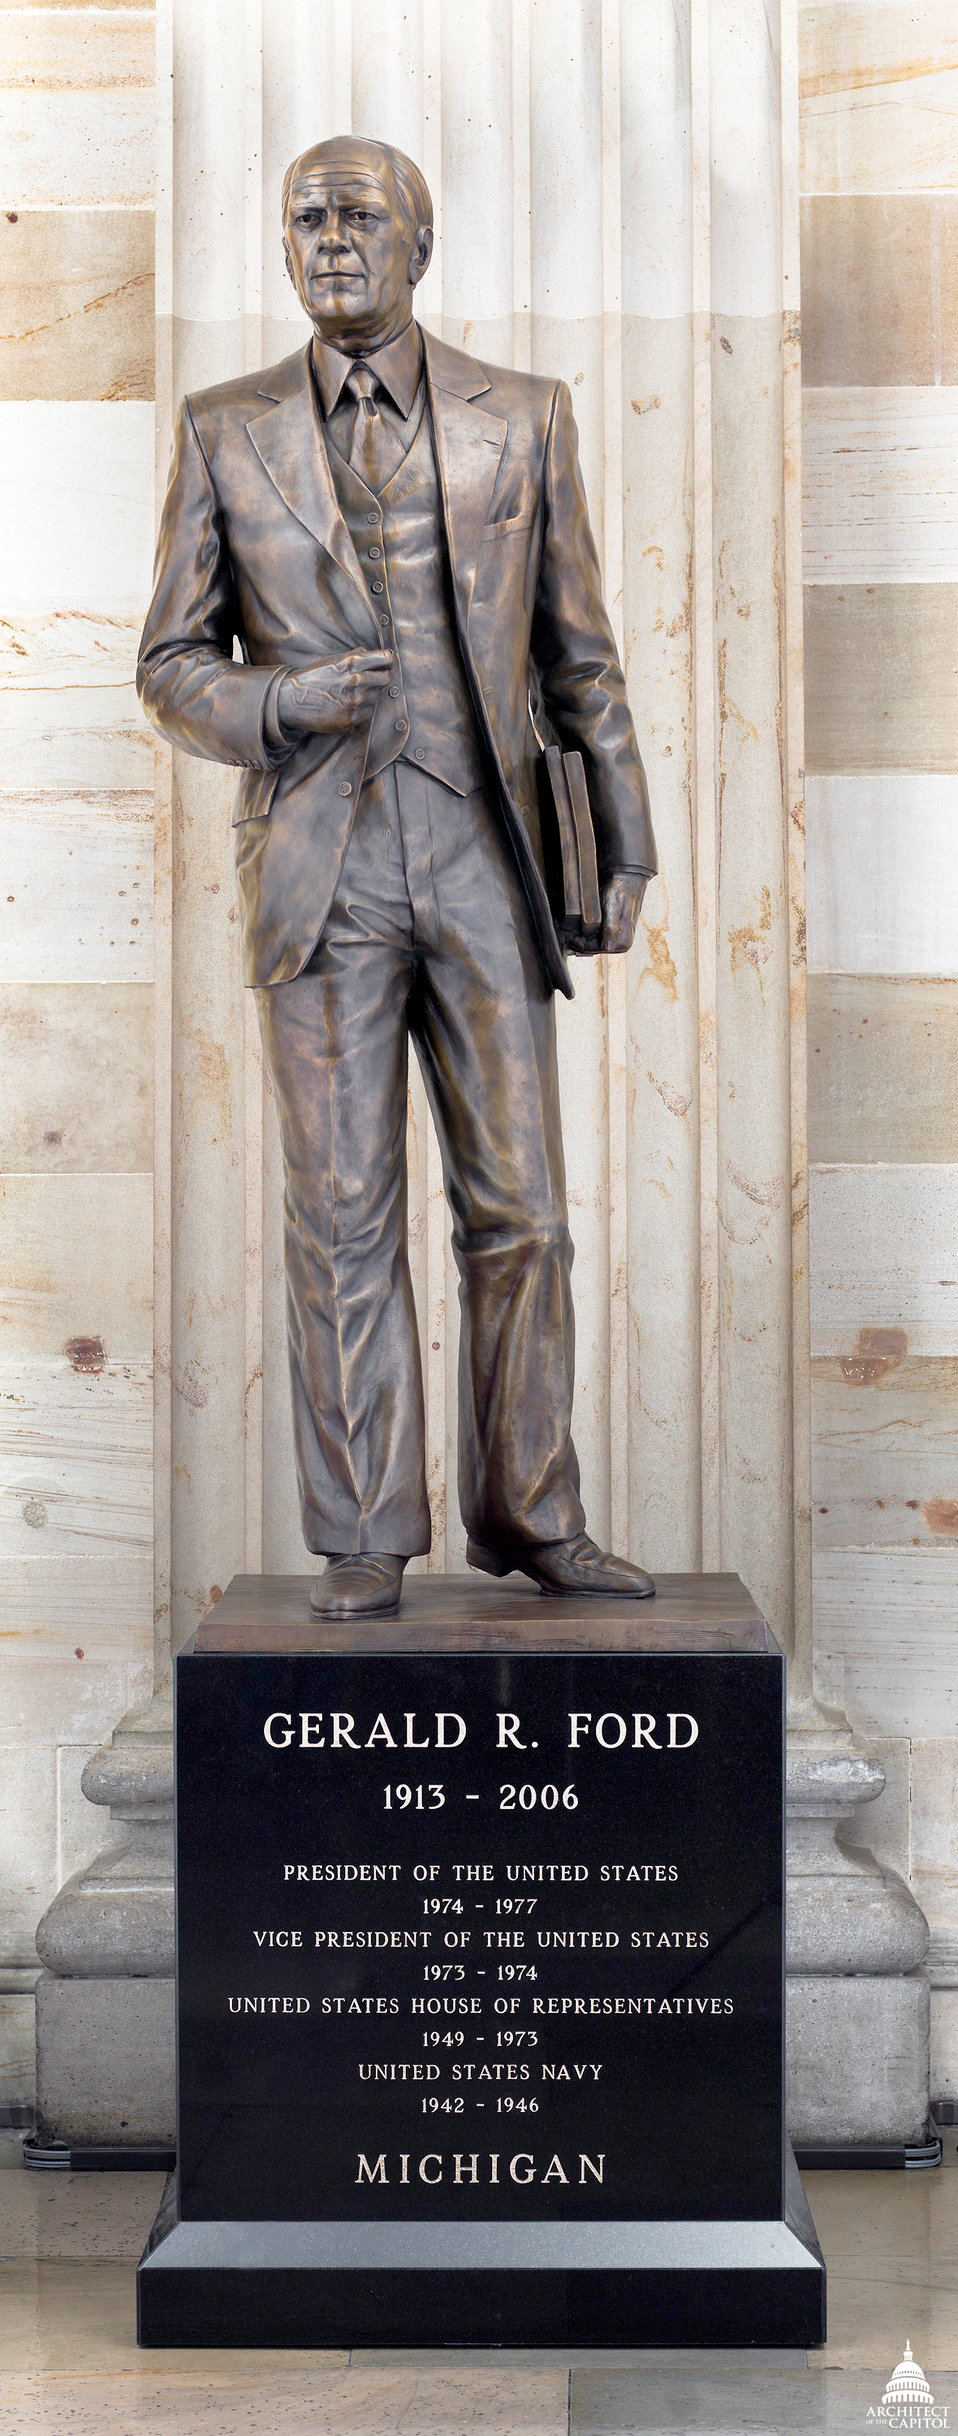 Gerald R. Ford, Jr. Statue